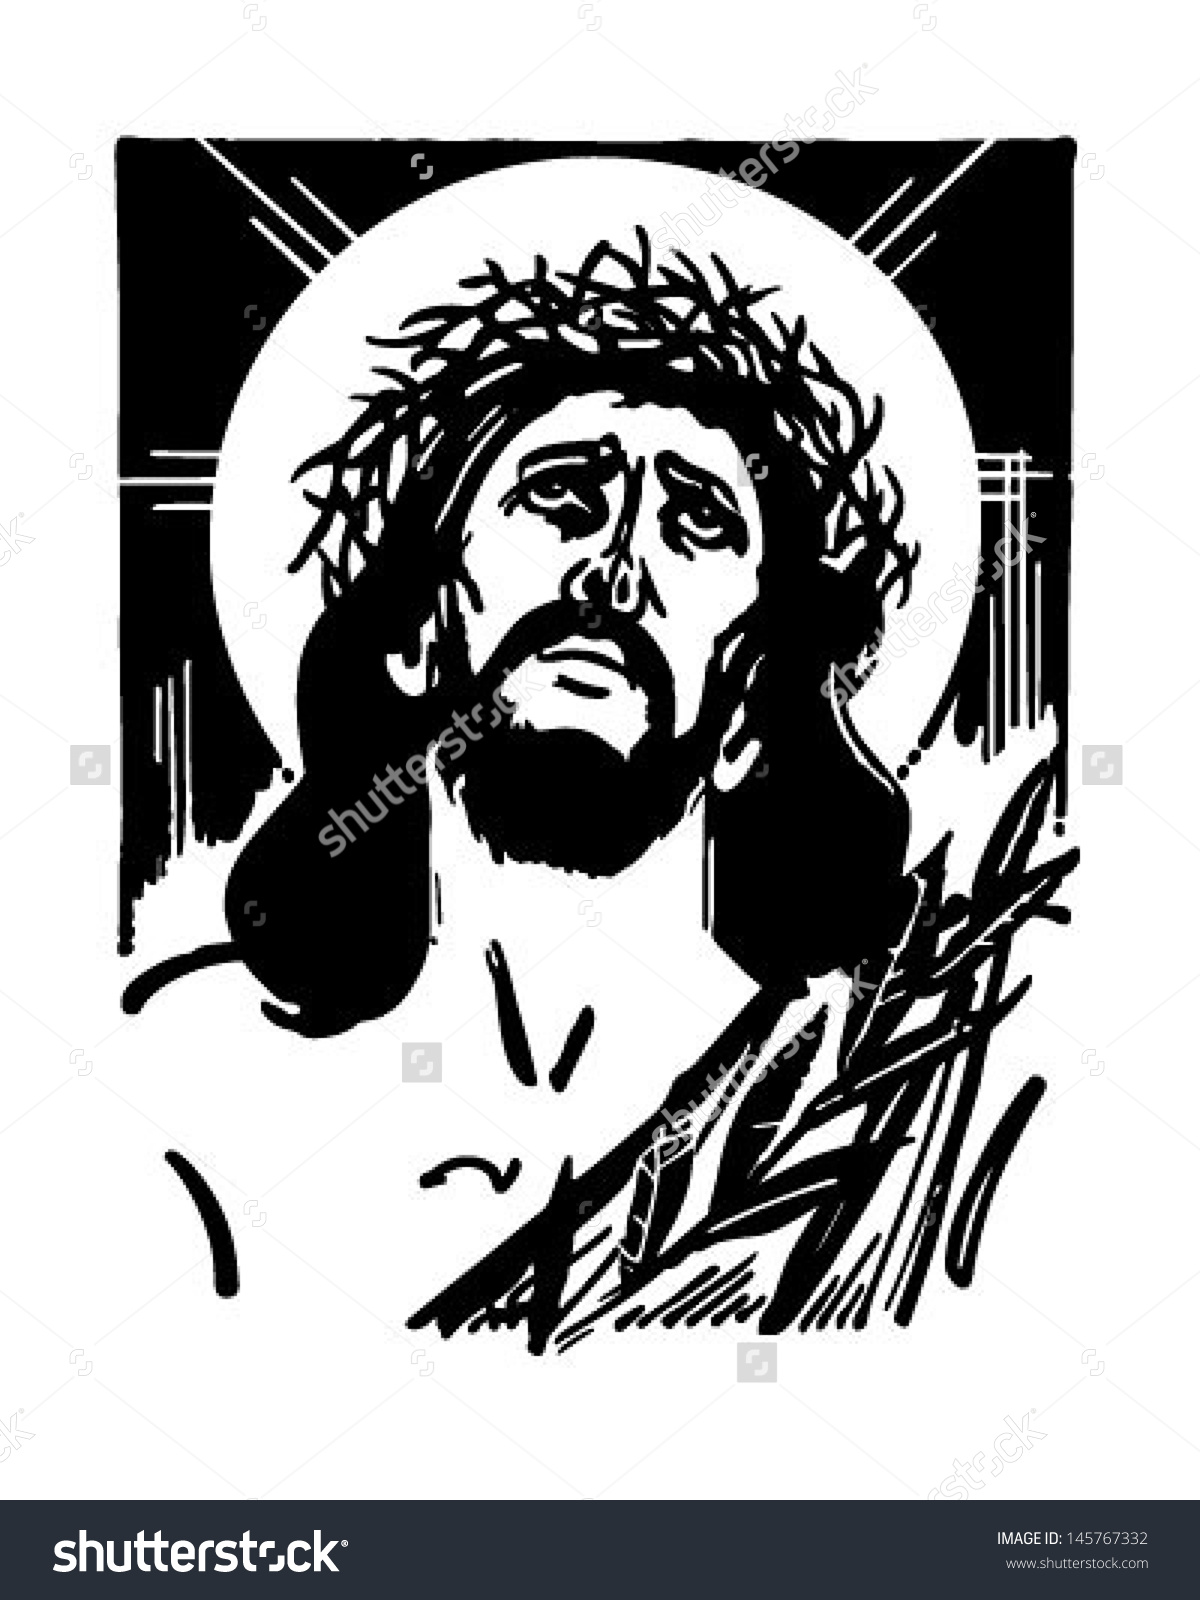 Jesus Crown Thorns Retro Clip Art Stock Vector 145767332.